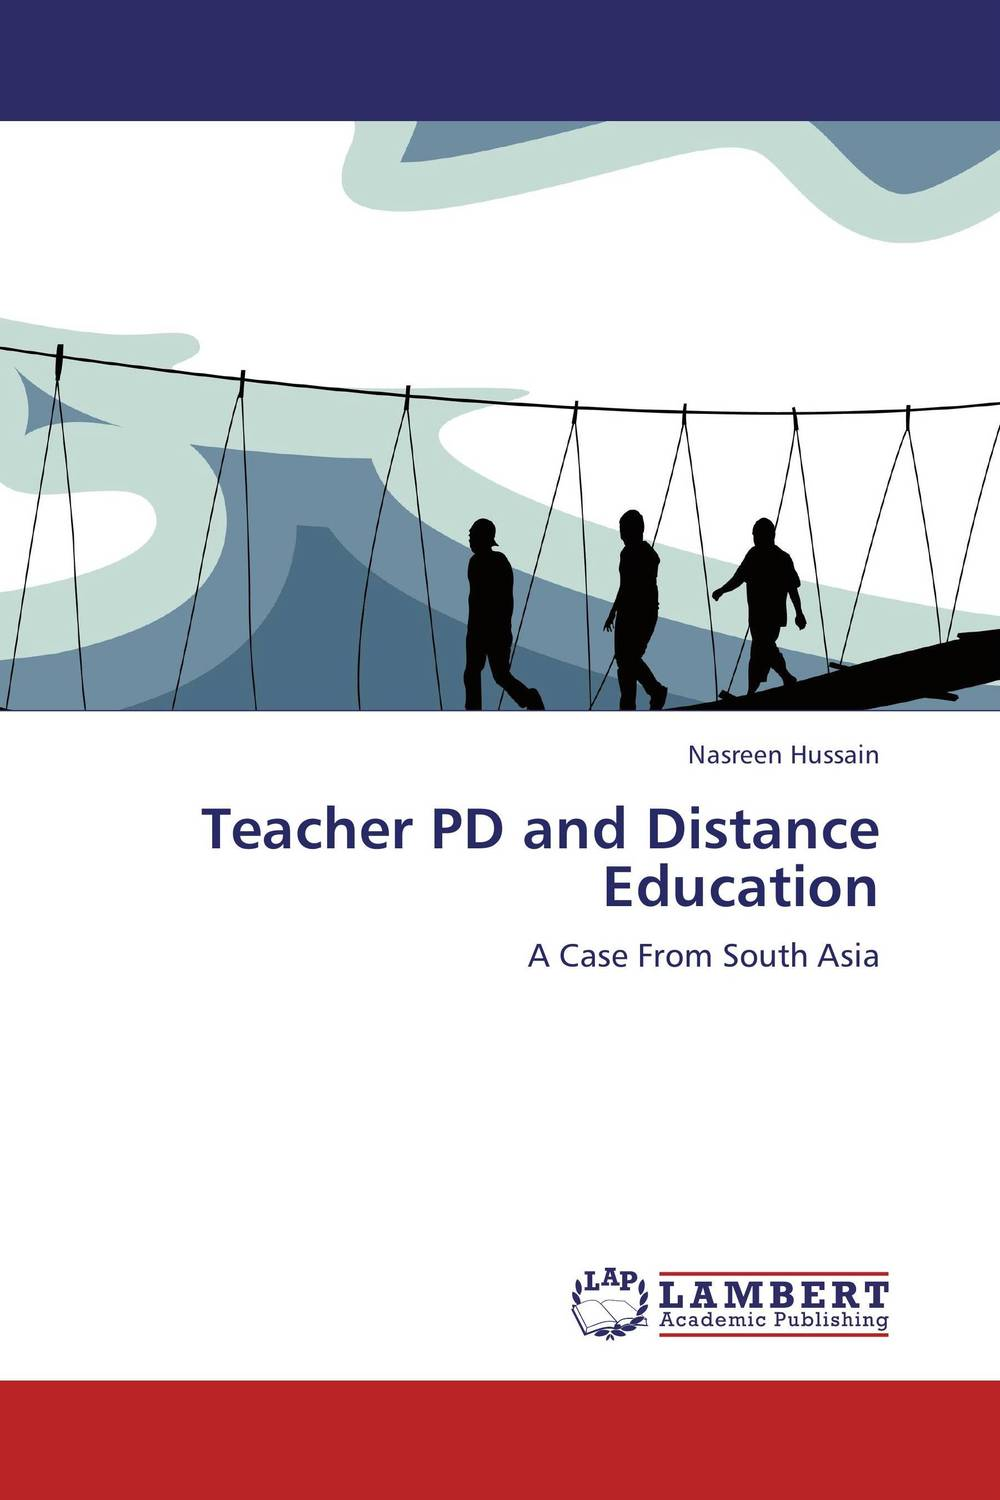 Teacher PD and Distance Education